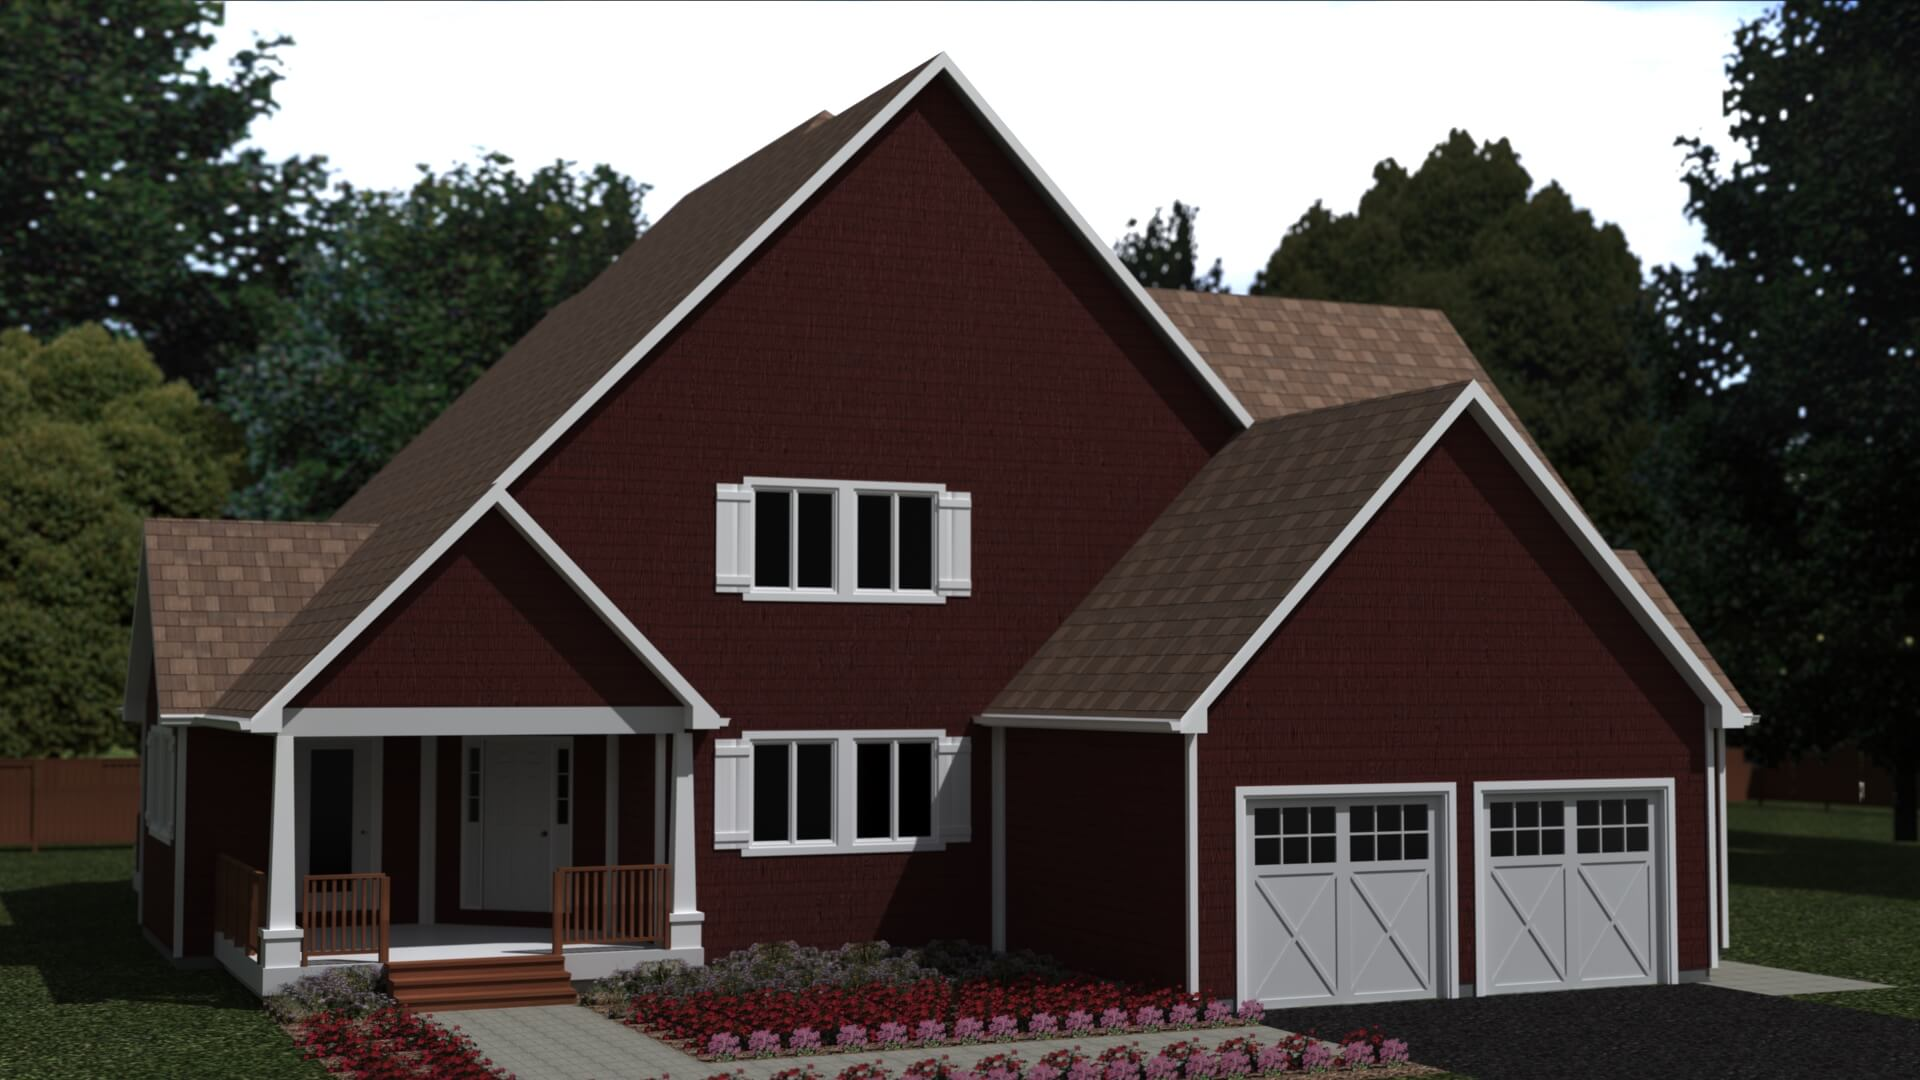 2863 sq.ft. timber mart house 4 bed 3 bath exterior render